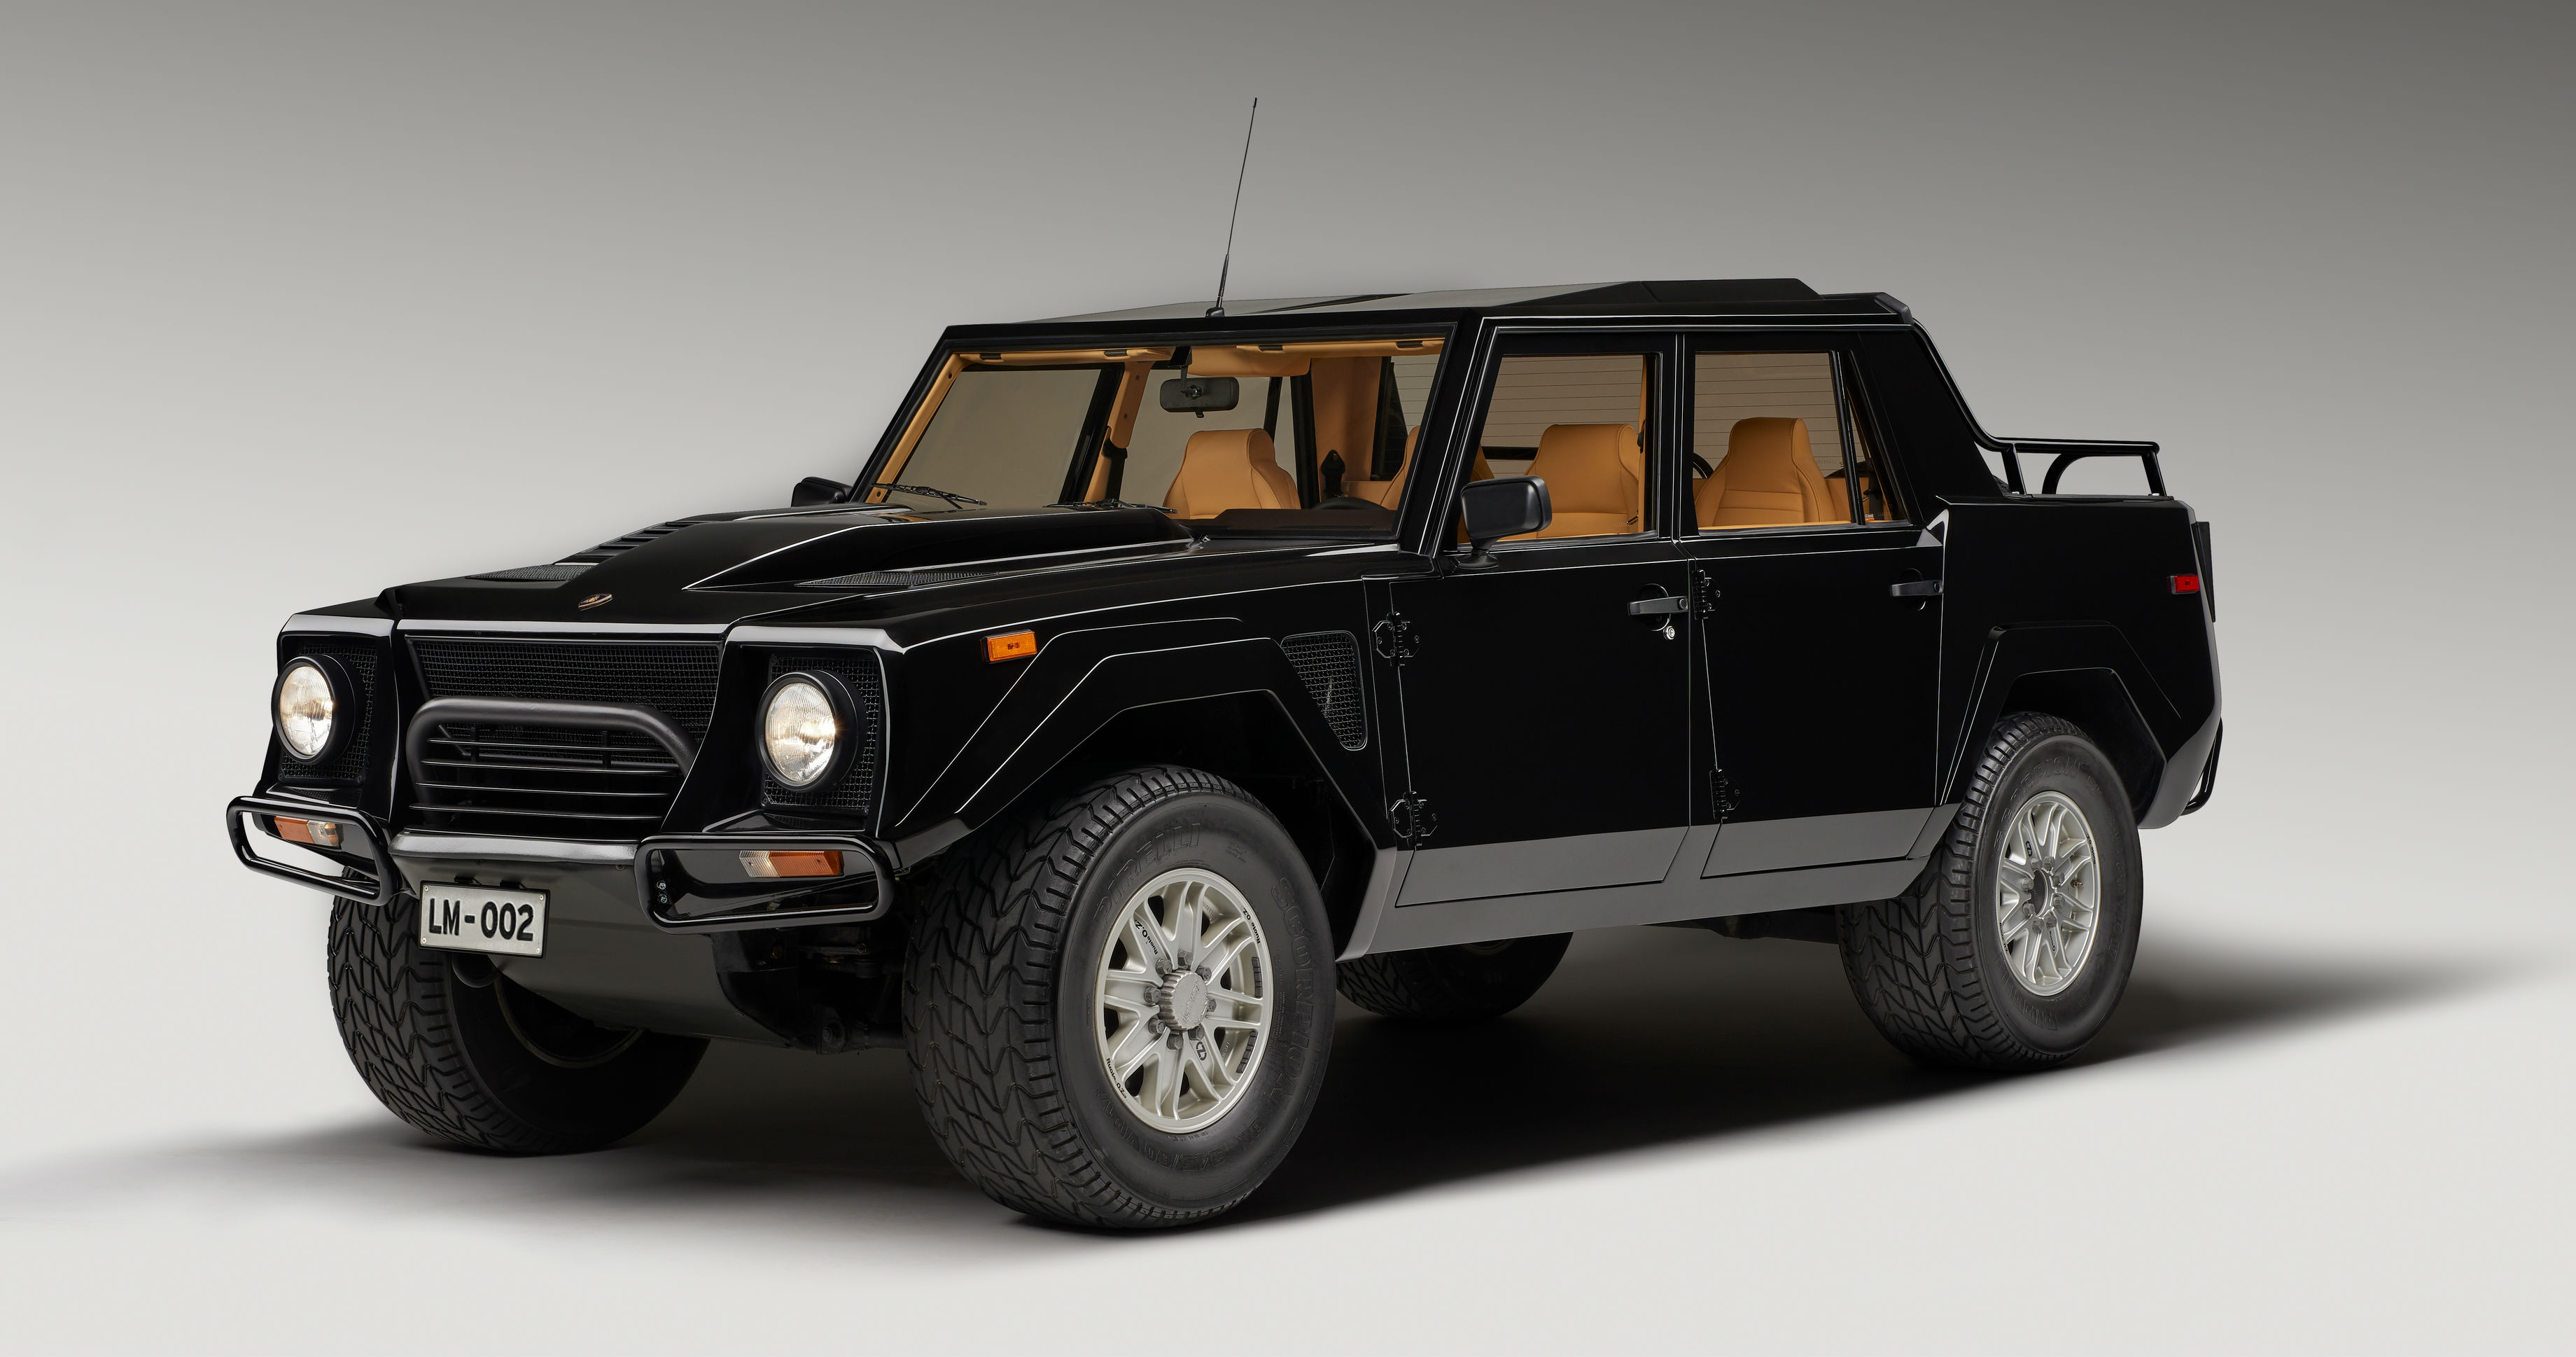 Lamborghini Looks Back On Its First Suv The Lm002 Torque